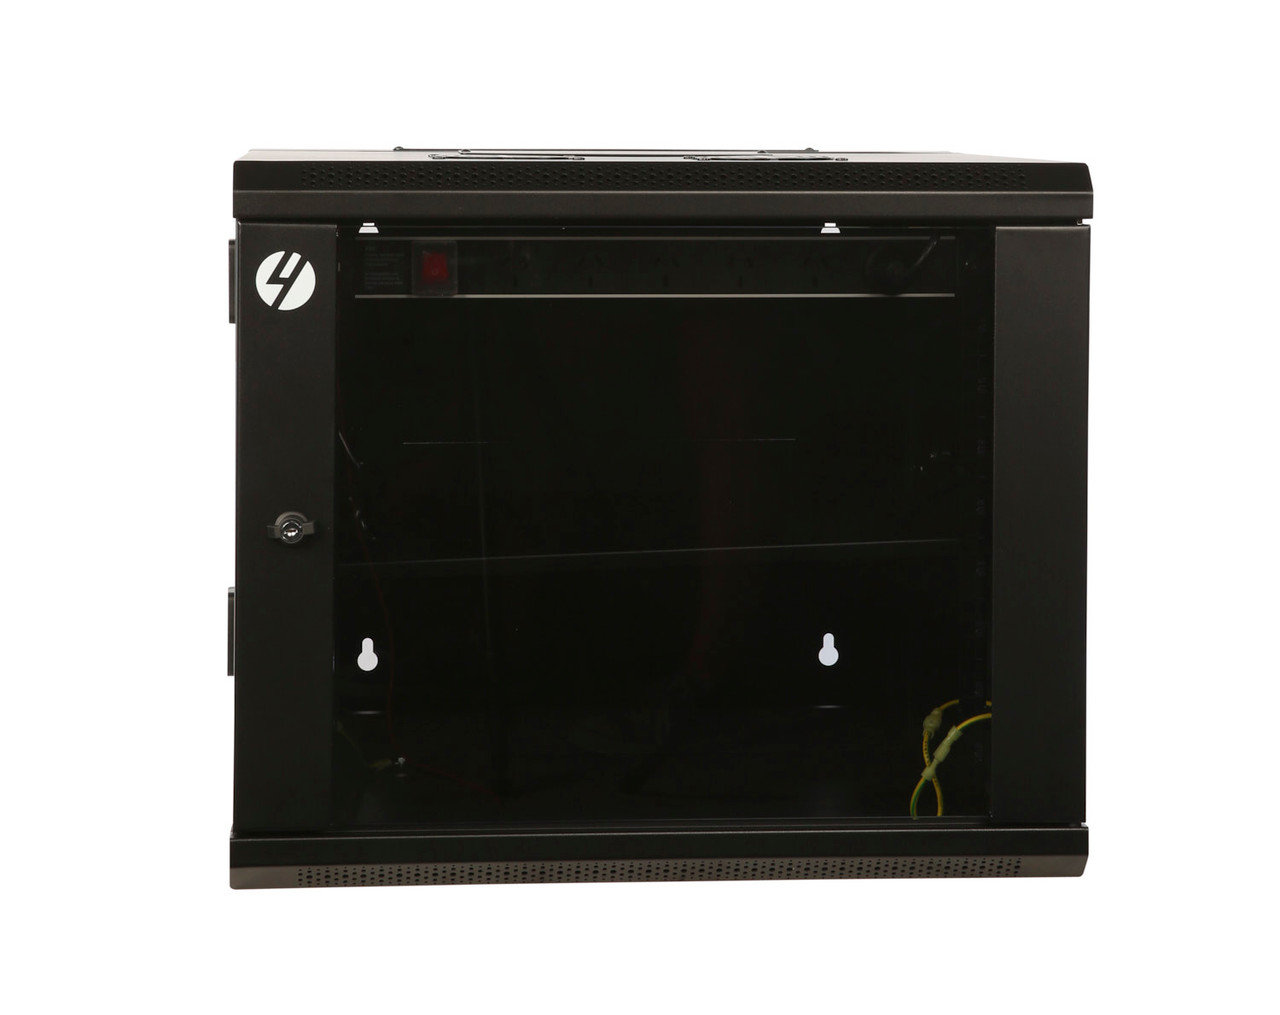 Image for 4Cabling 9RU W600mm x D600mm Hinged Wall Mount Server Rack CX Computer Superstore